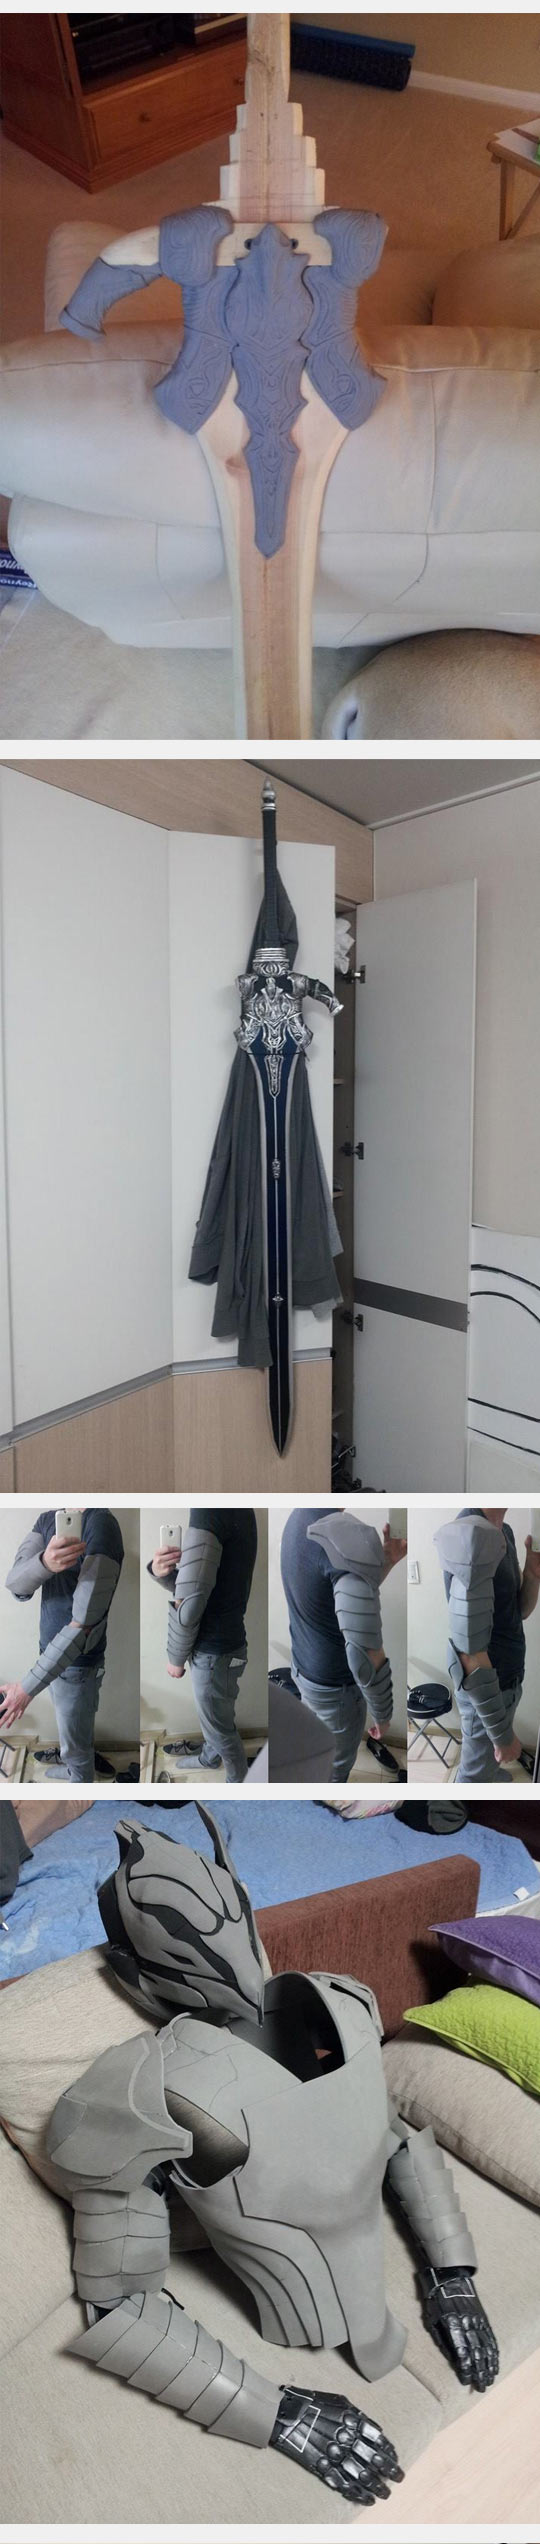 2-funny-cosplay-brothers-artorias-knight-sword